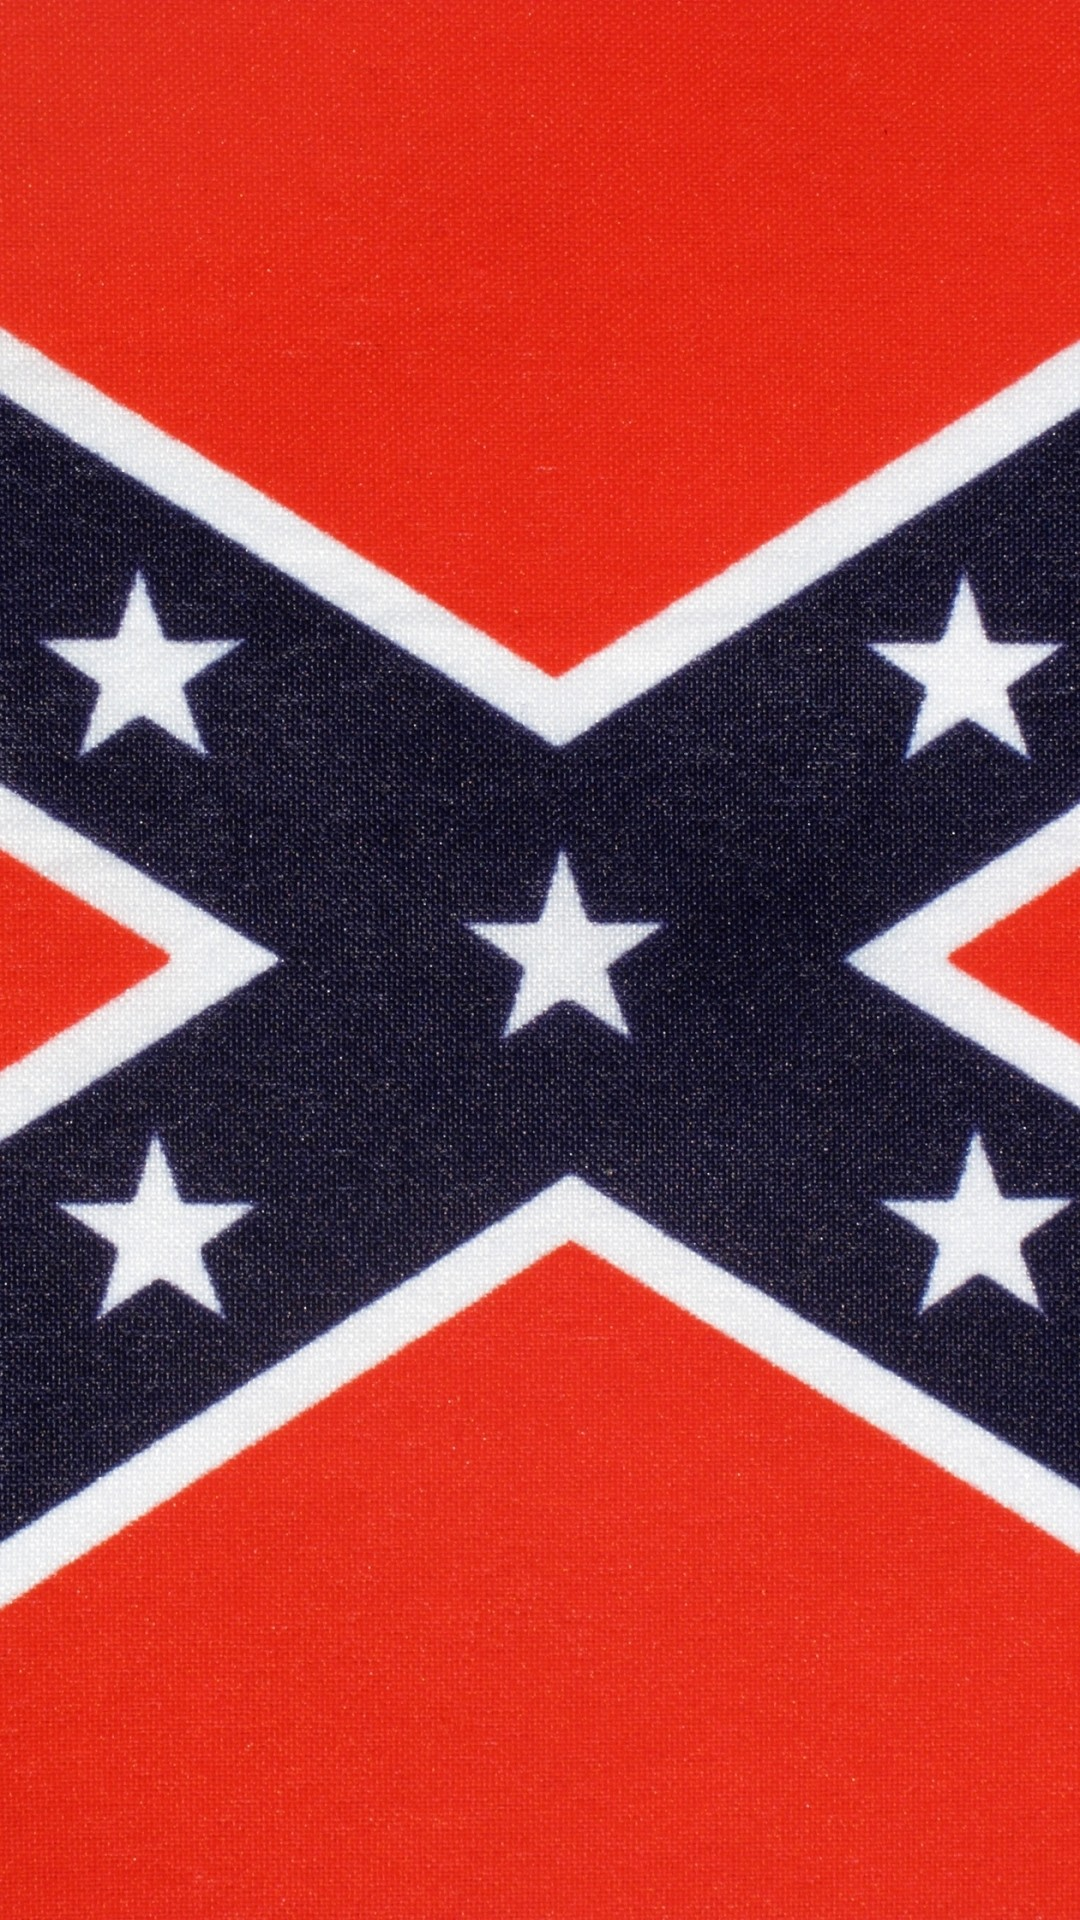 Iphone Ios 7 Animated Wallpaper Cool Rebel Flag Wallpaper 59 Images